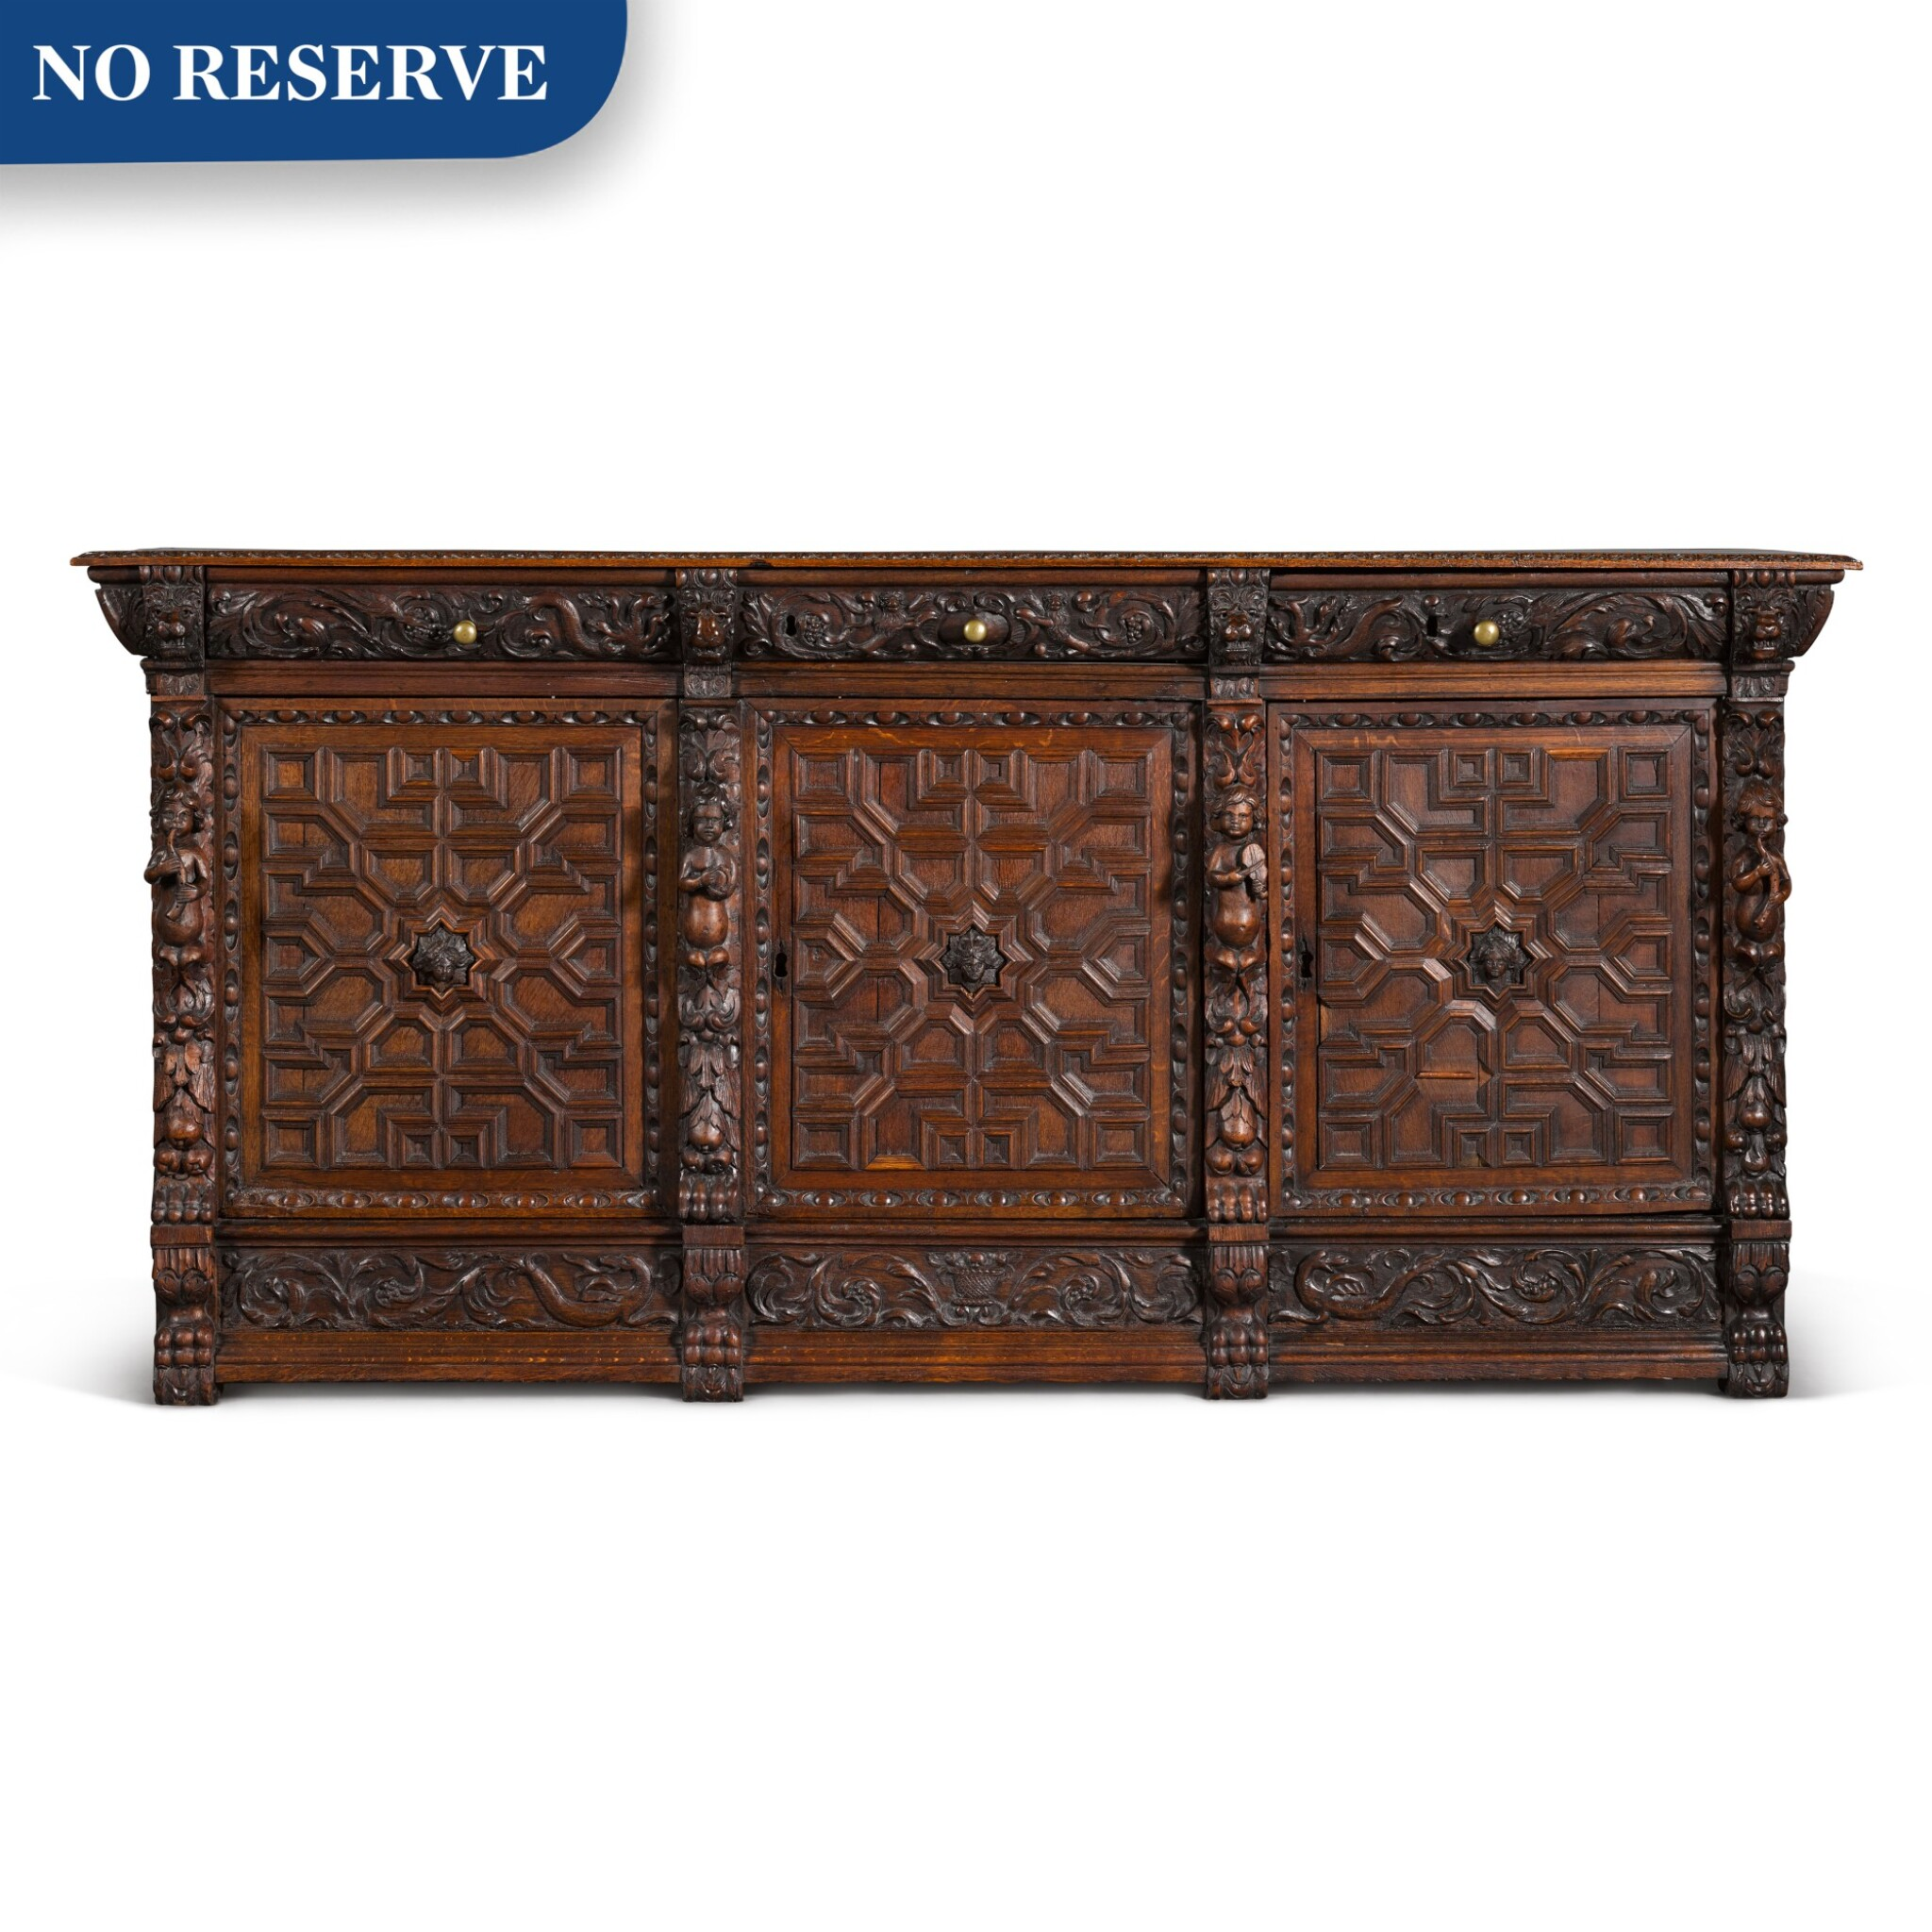 View 1 of Lot 9. A Flemish Renaissance style carved oak low cabinet (ribbank), probably Antwerp.